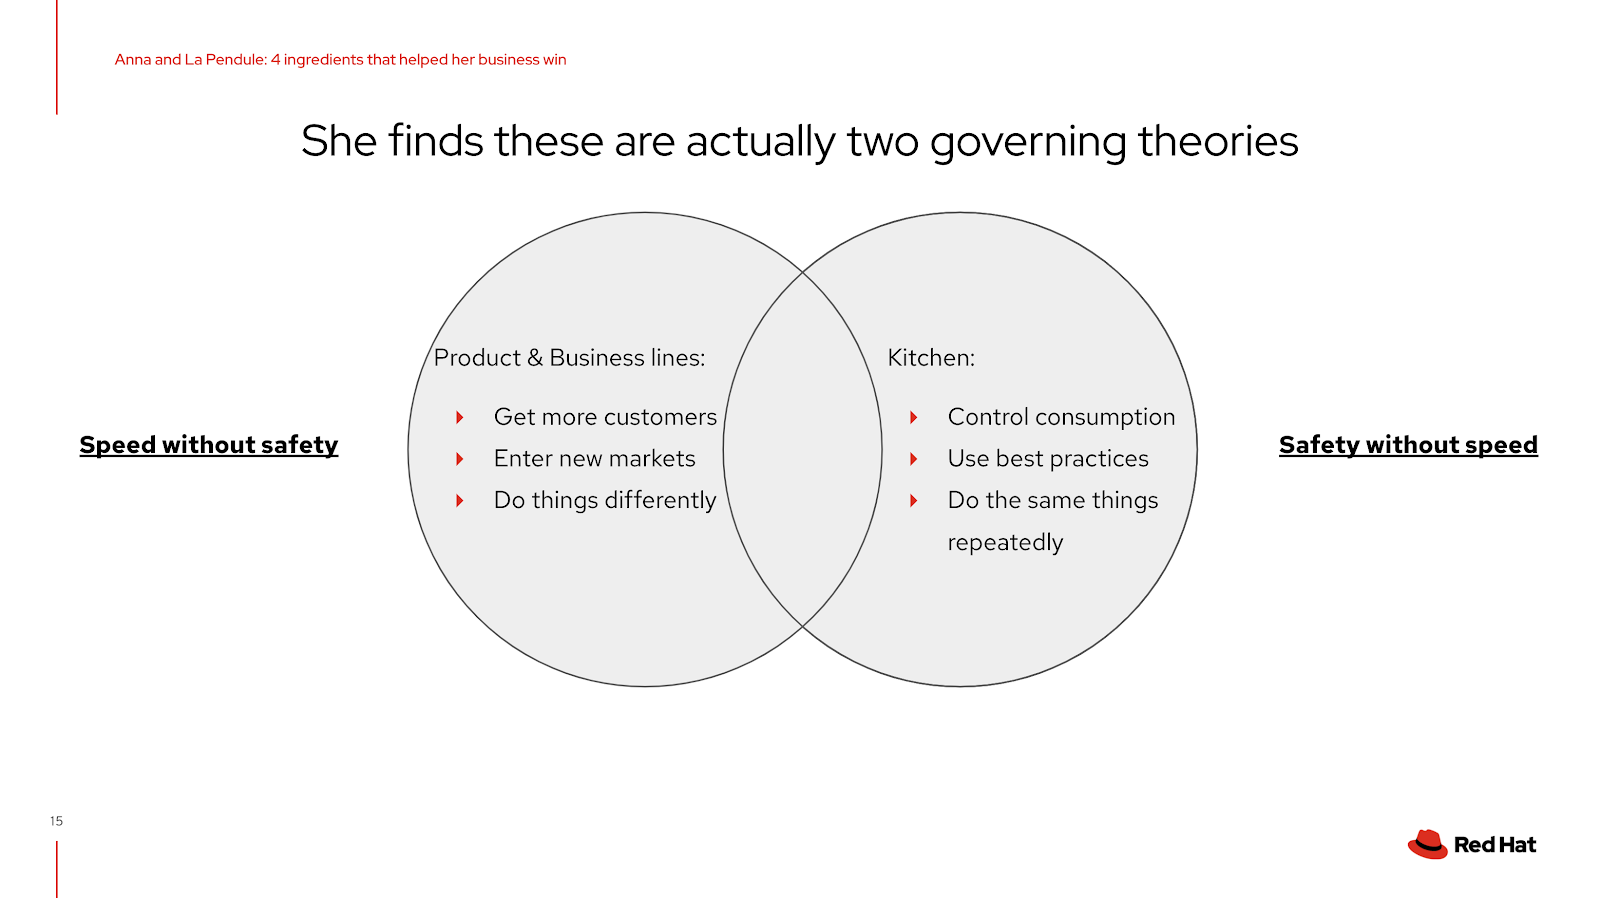 The 2 economies are actually two governing theories.